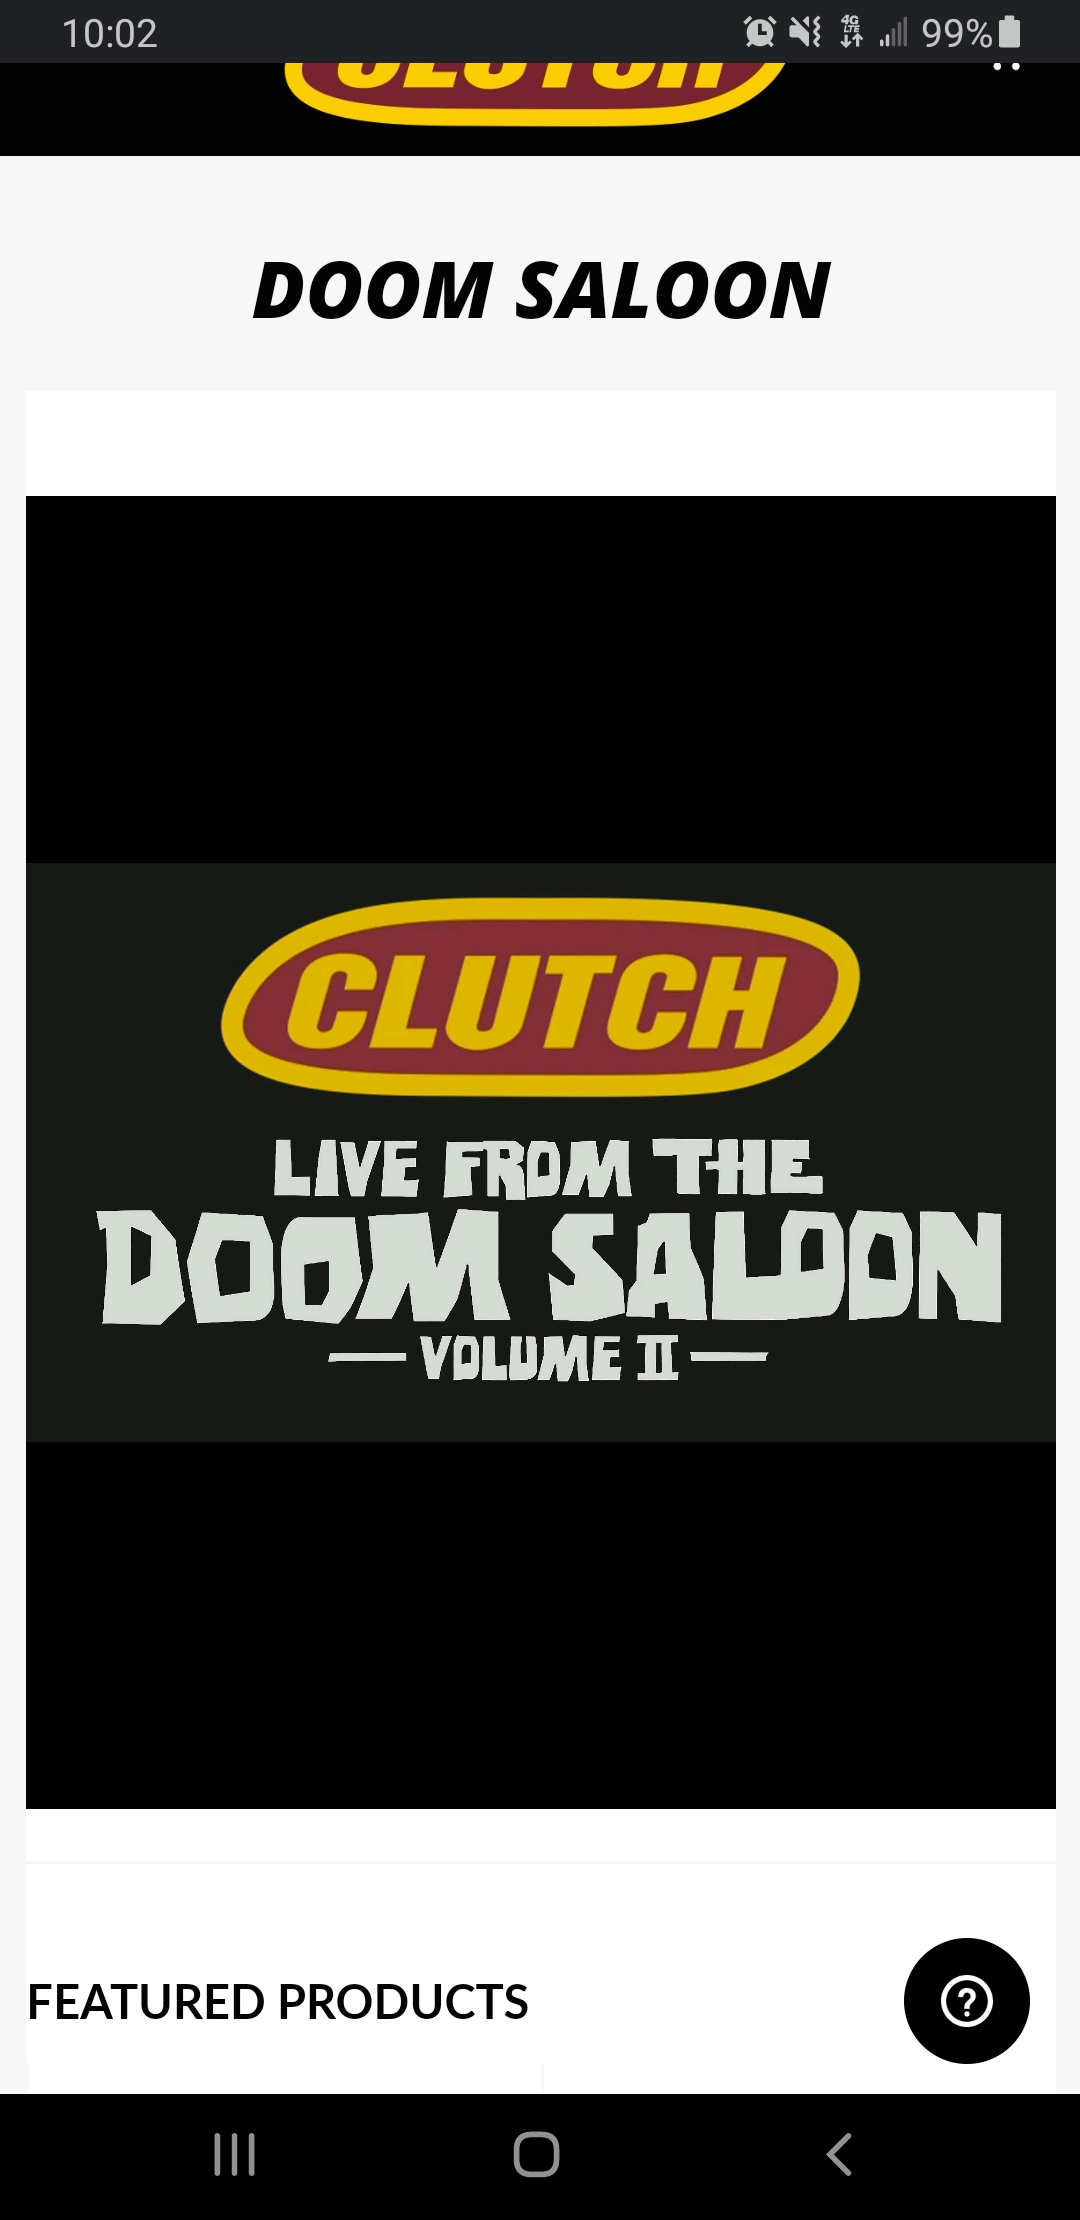 clutch doom saloon logo